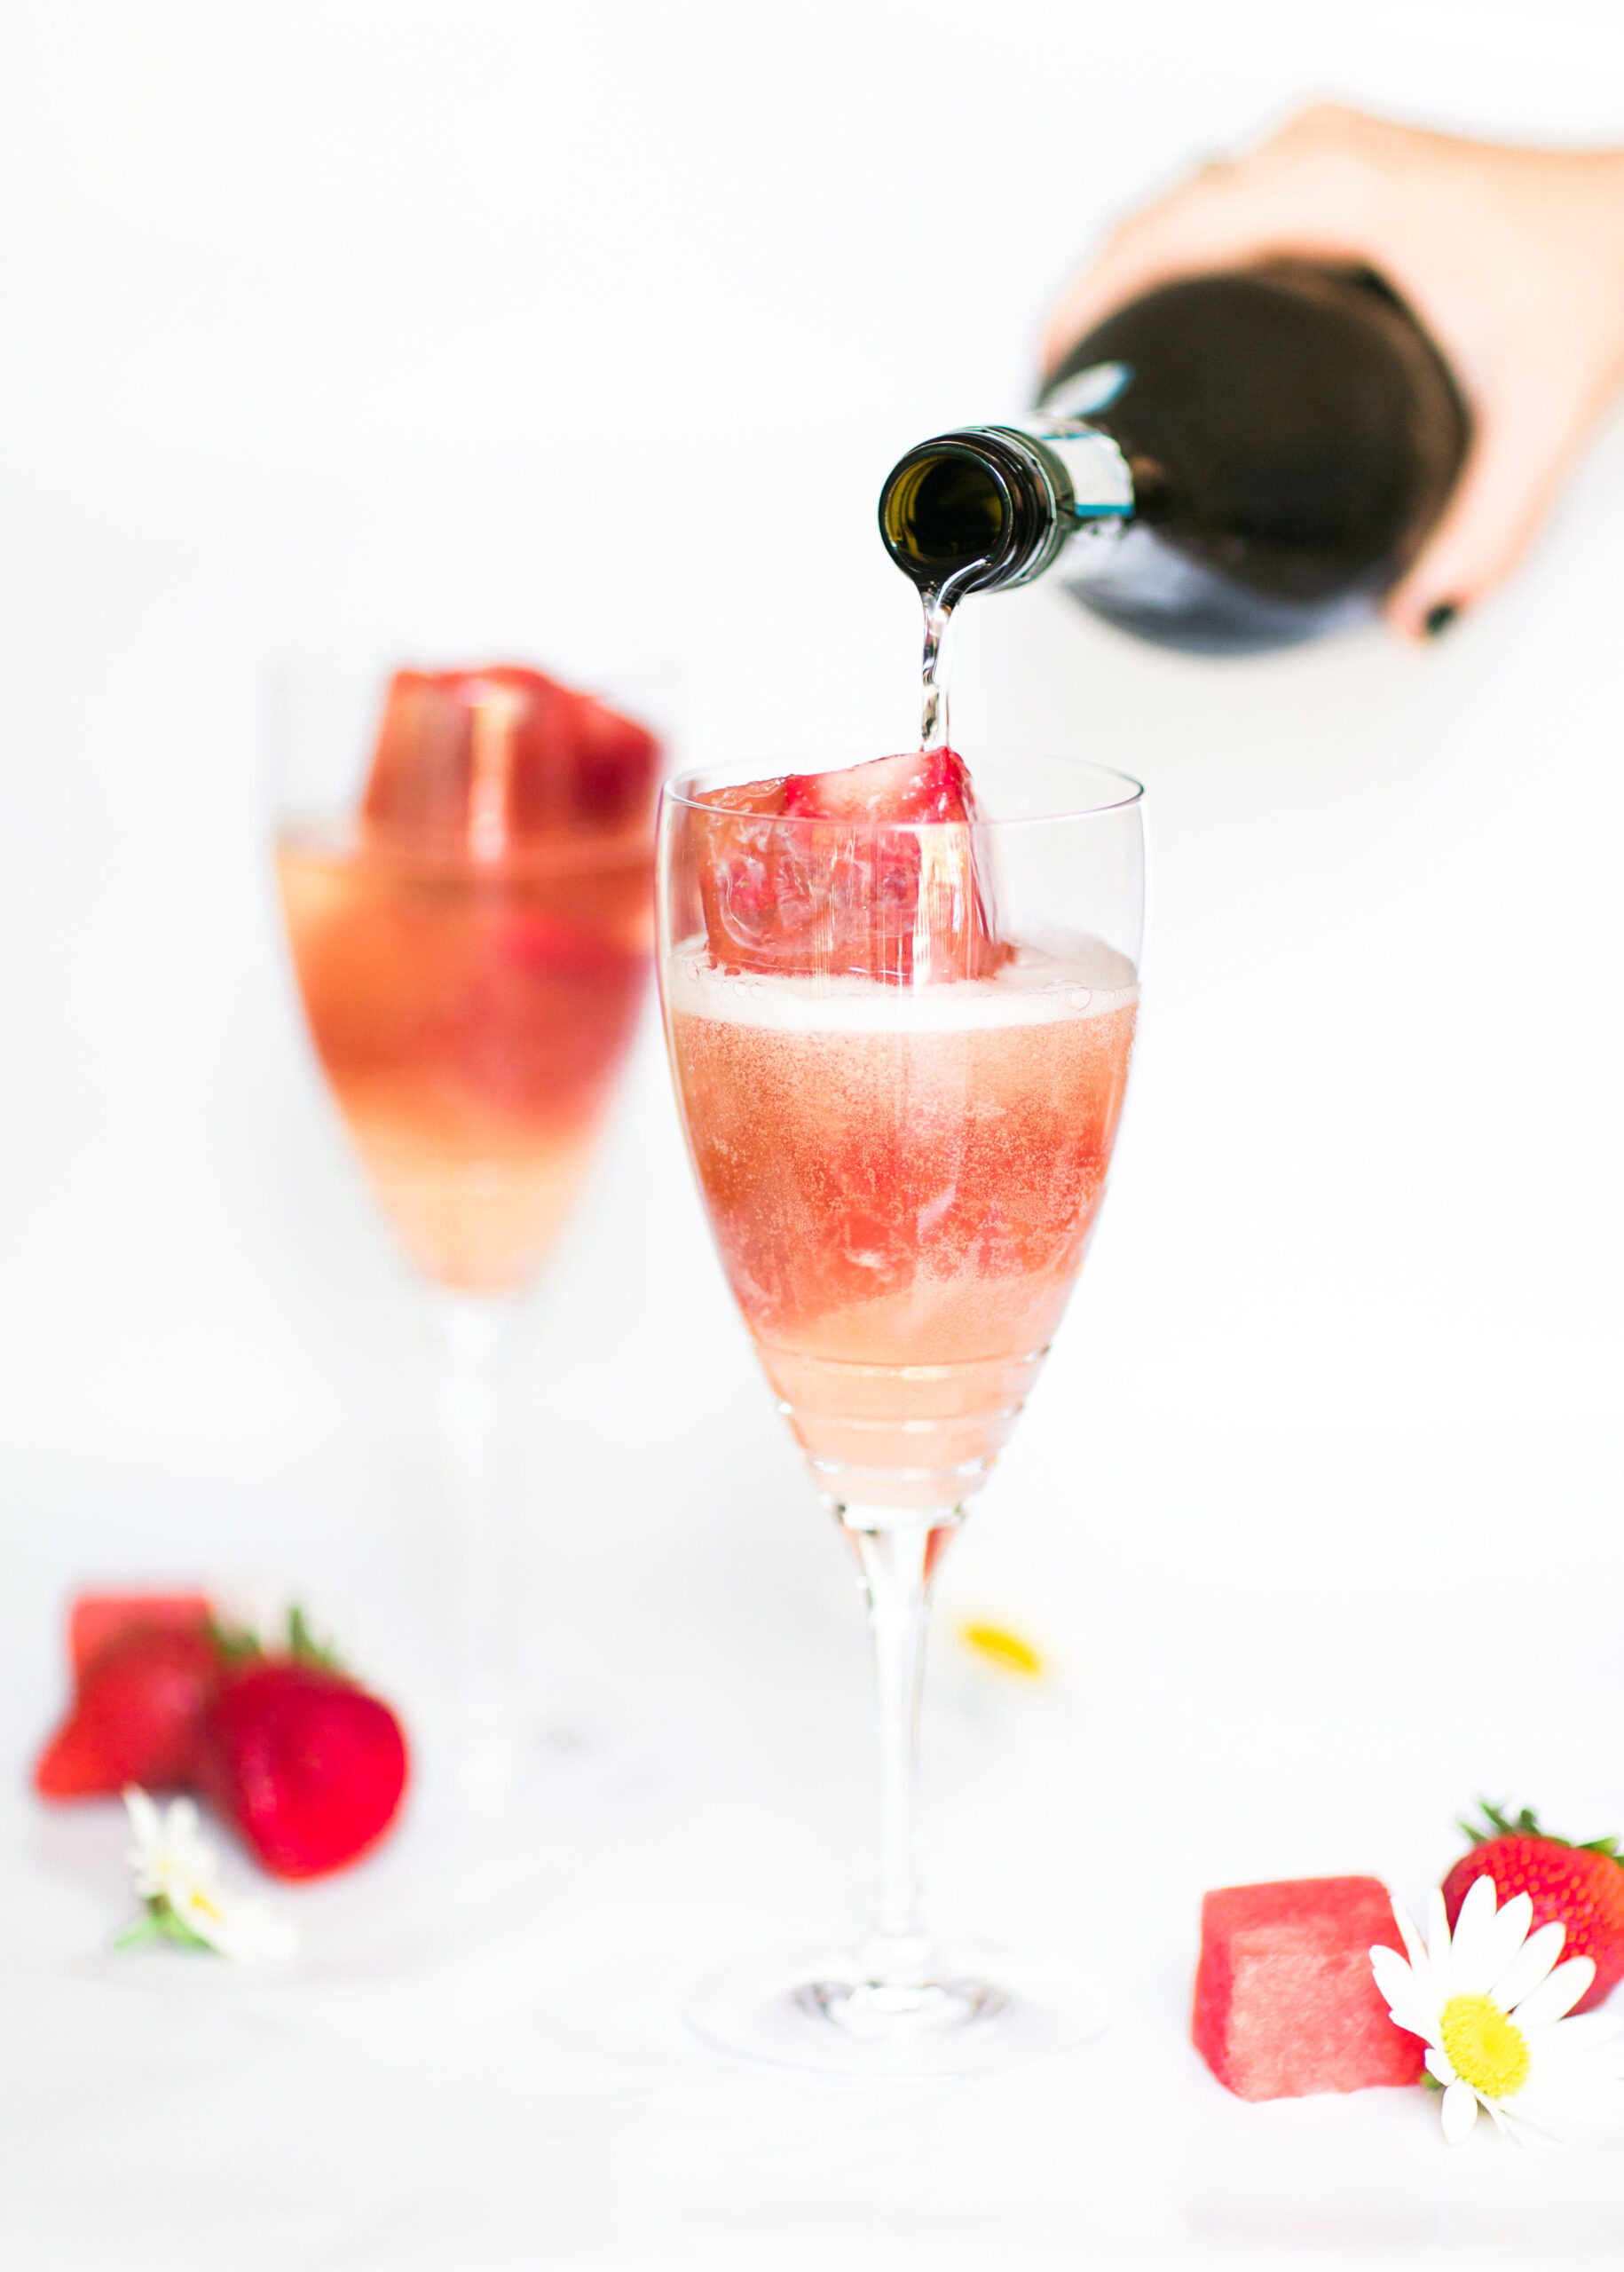 Strawberry Watermelon Prosecco Spritzers for Patriotic Drink and Cocktail Recipes